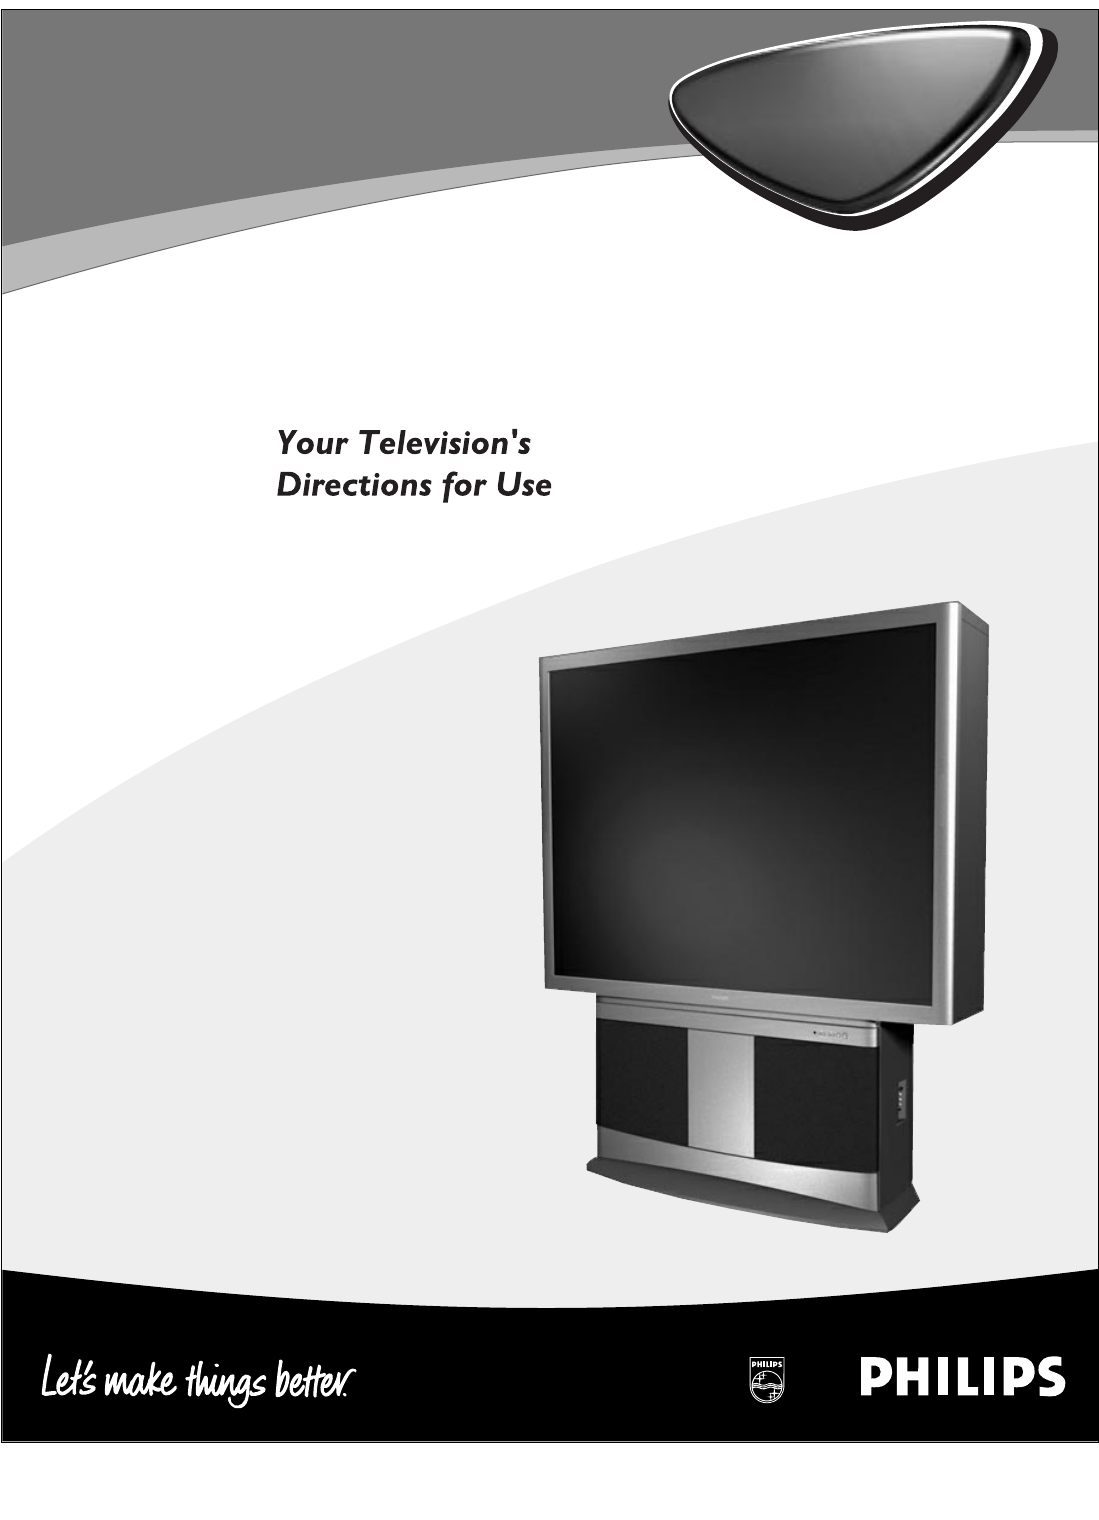 philips television manual